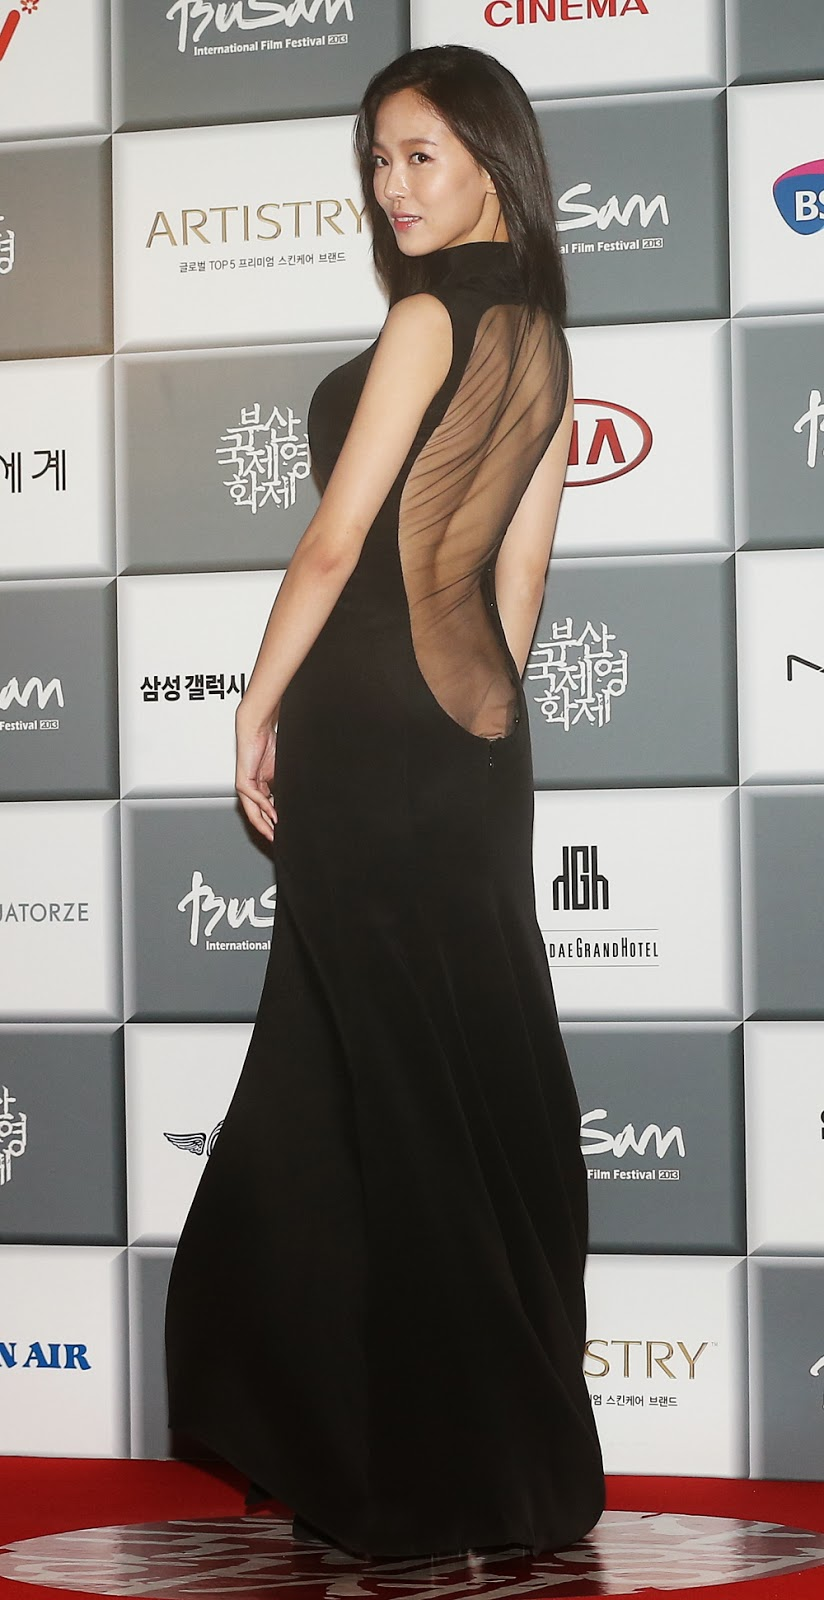 Actress Kang Hanna (강한나) who caused the biggest sensation with her revealing dress.